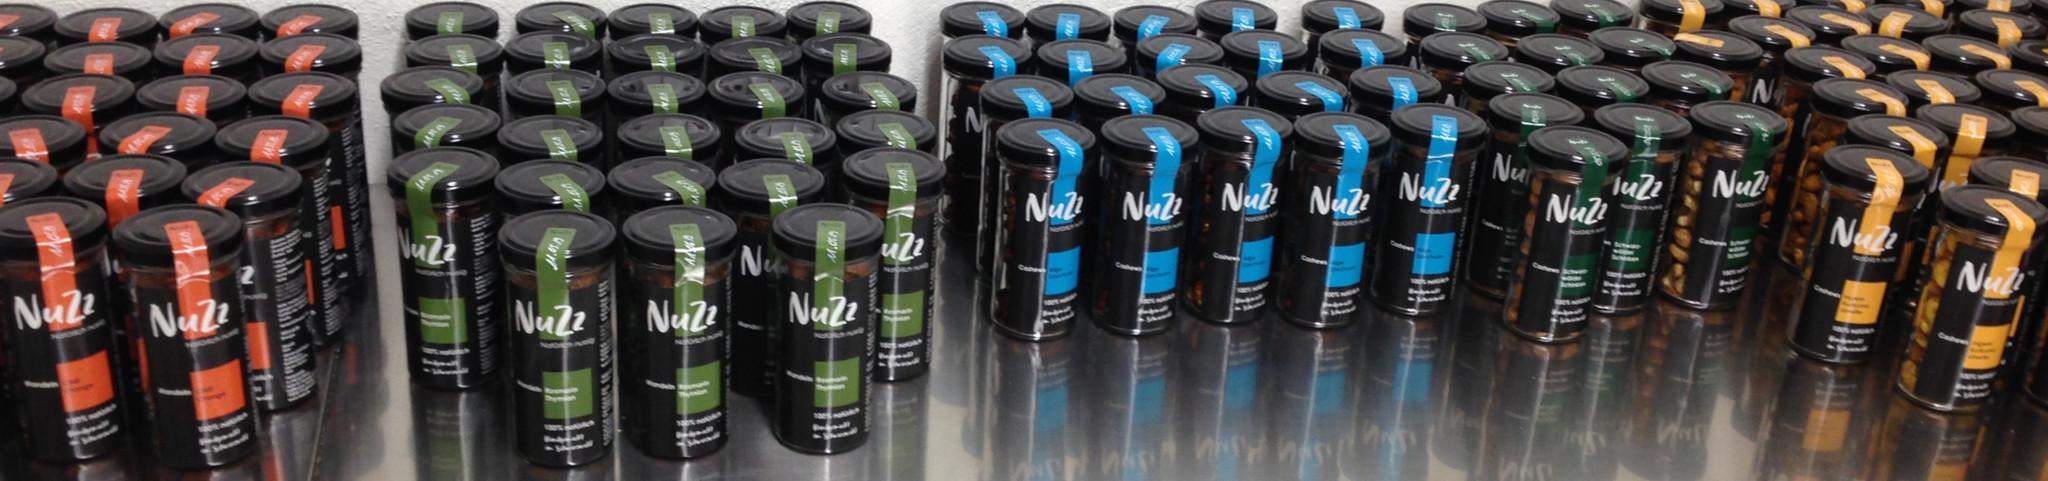 NuZz for hotels, bars, conferences, give-aways